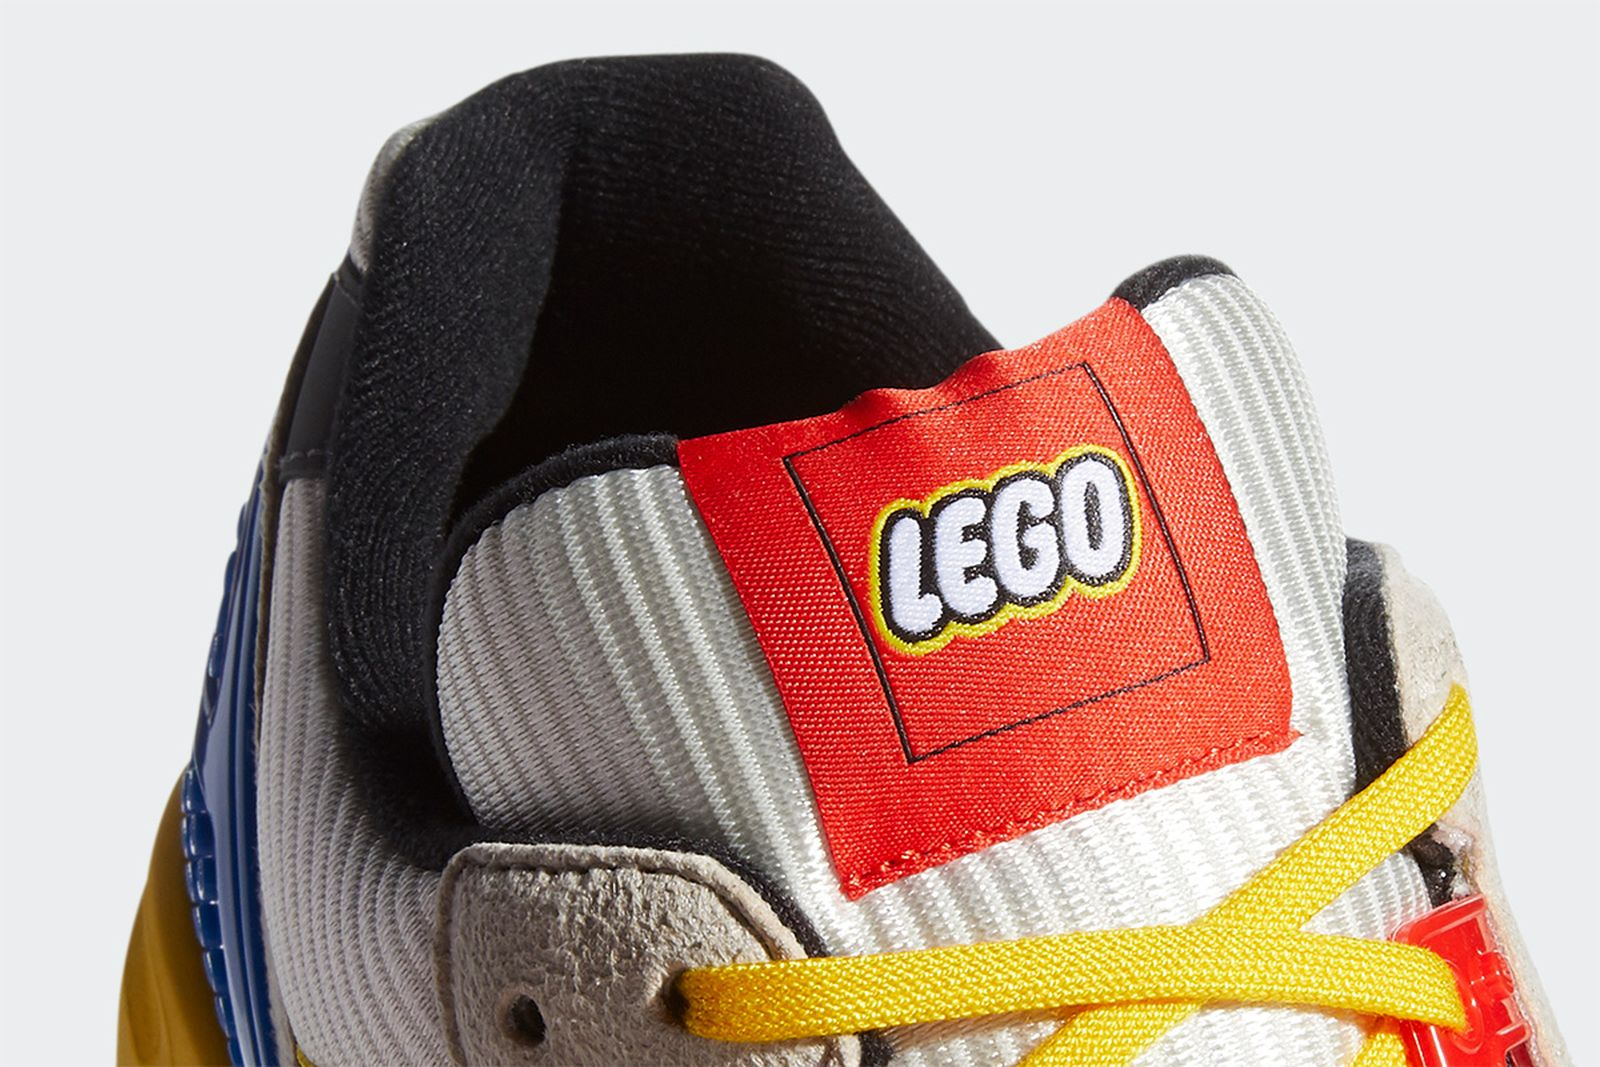 lego-adidas-zx-8000-release-date-price-03